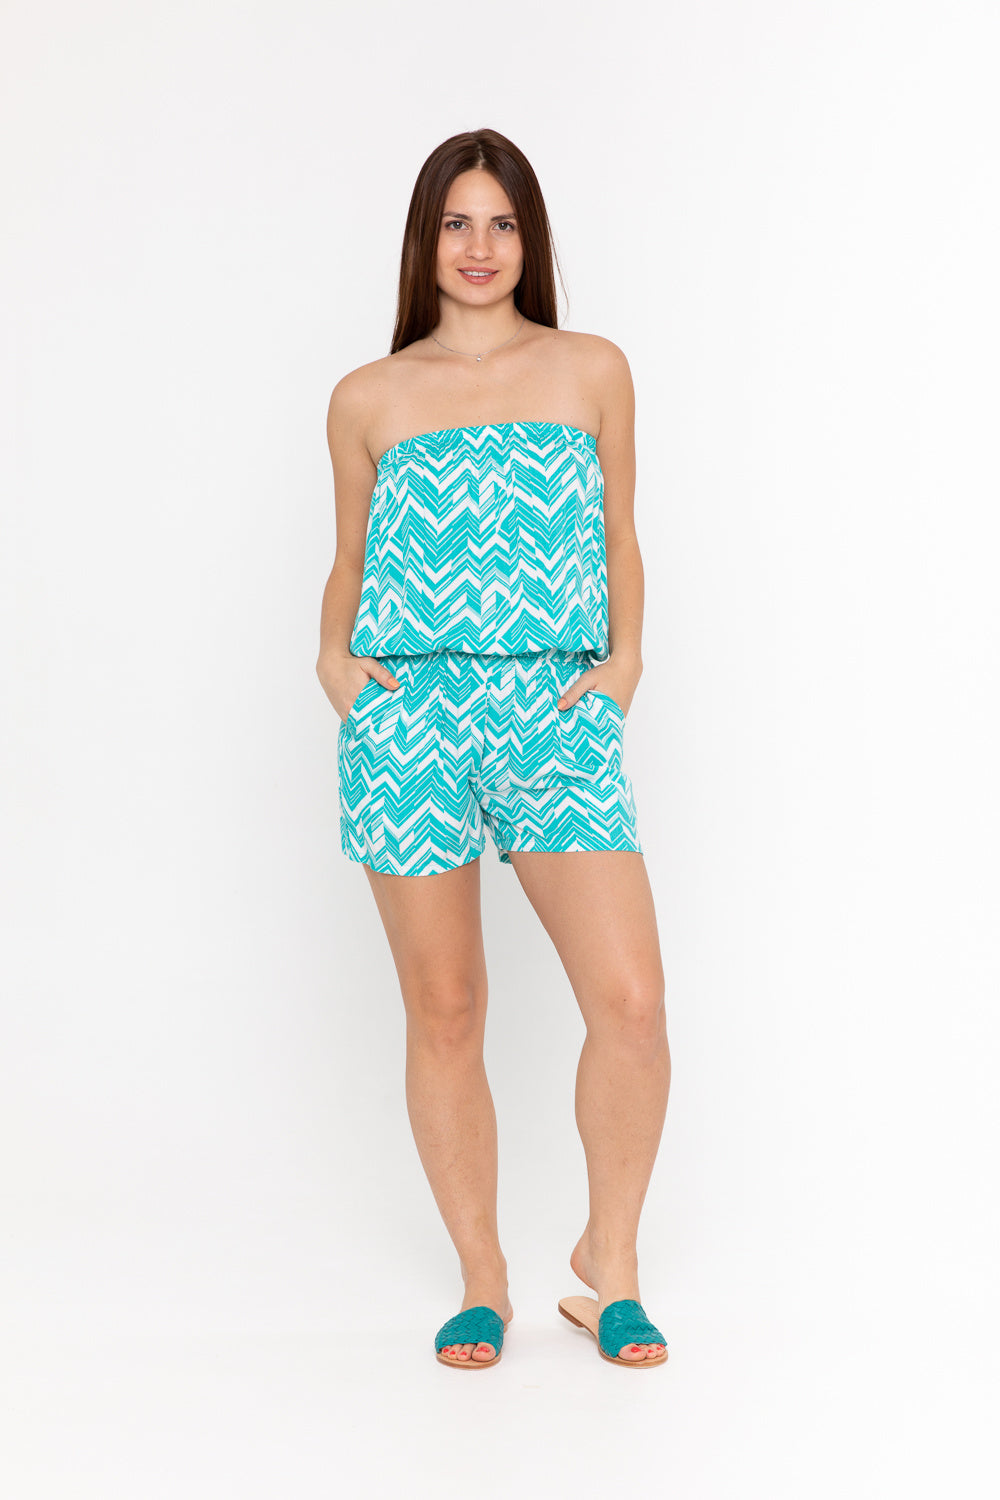 Playsuit Strapless - Sea Breeze